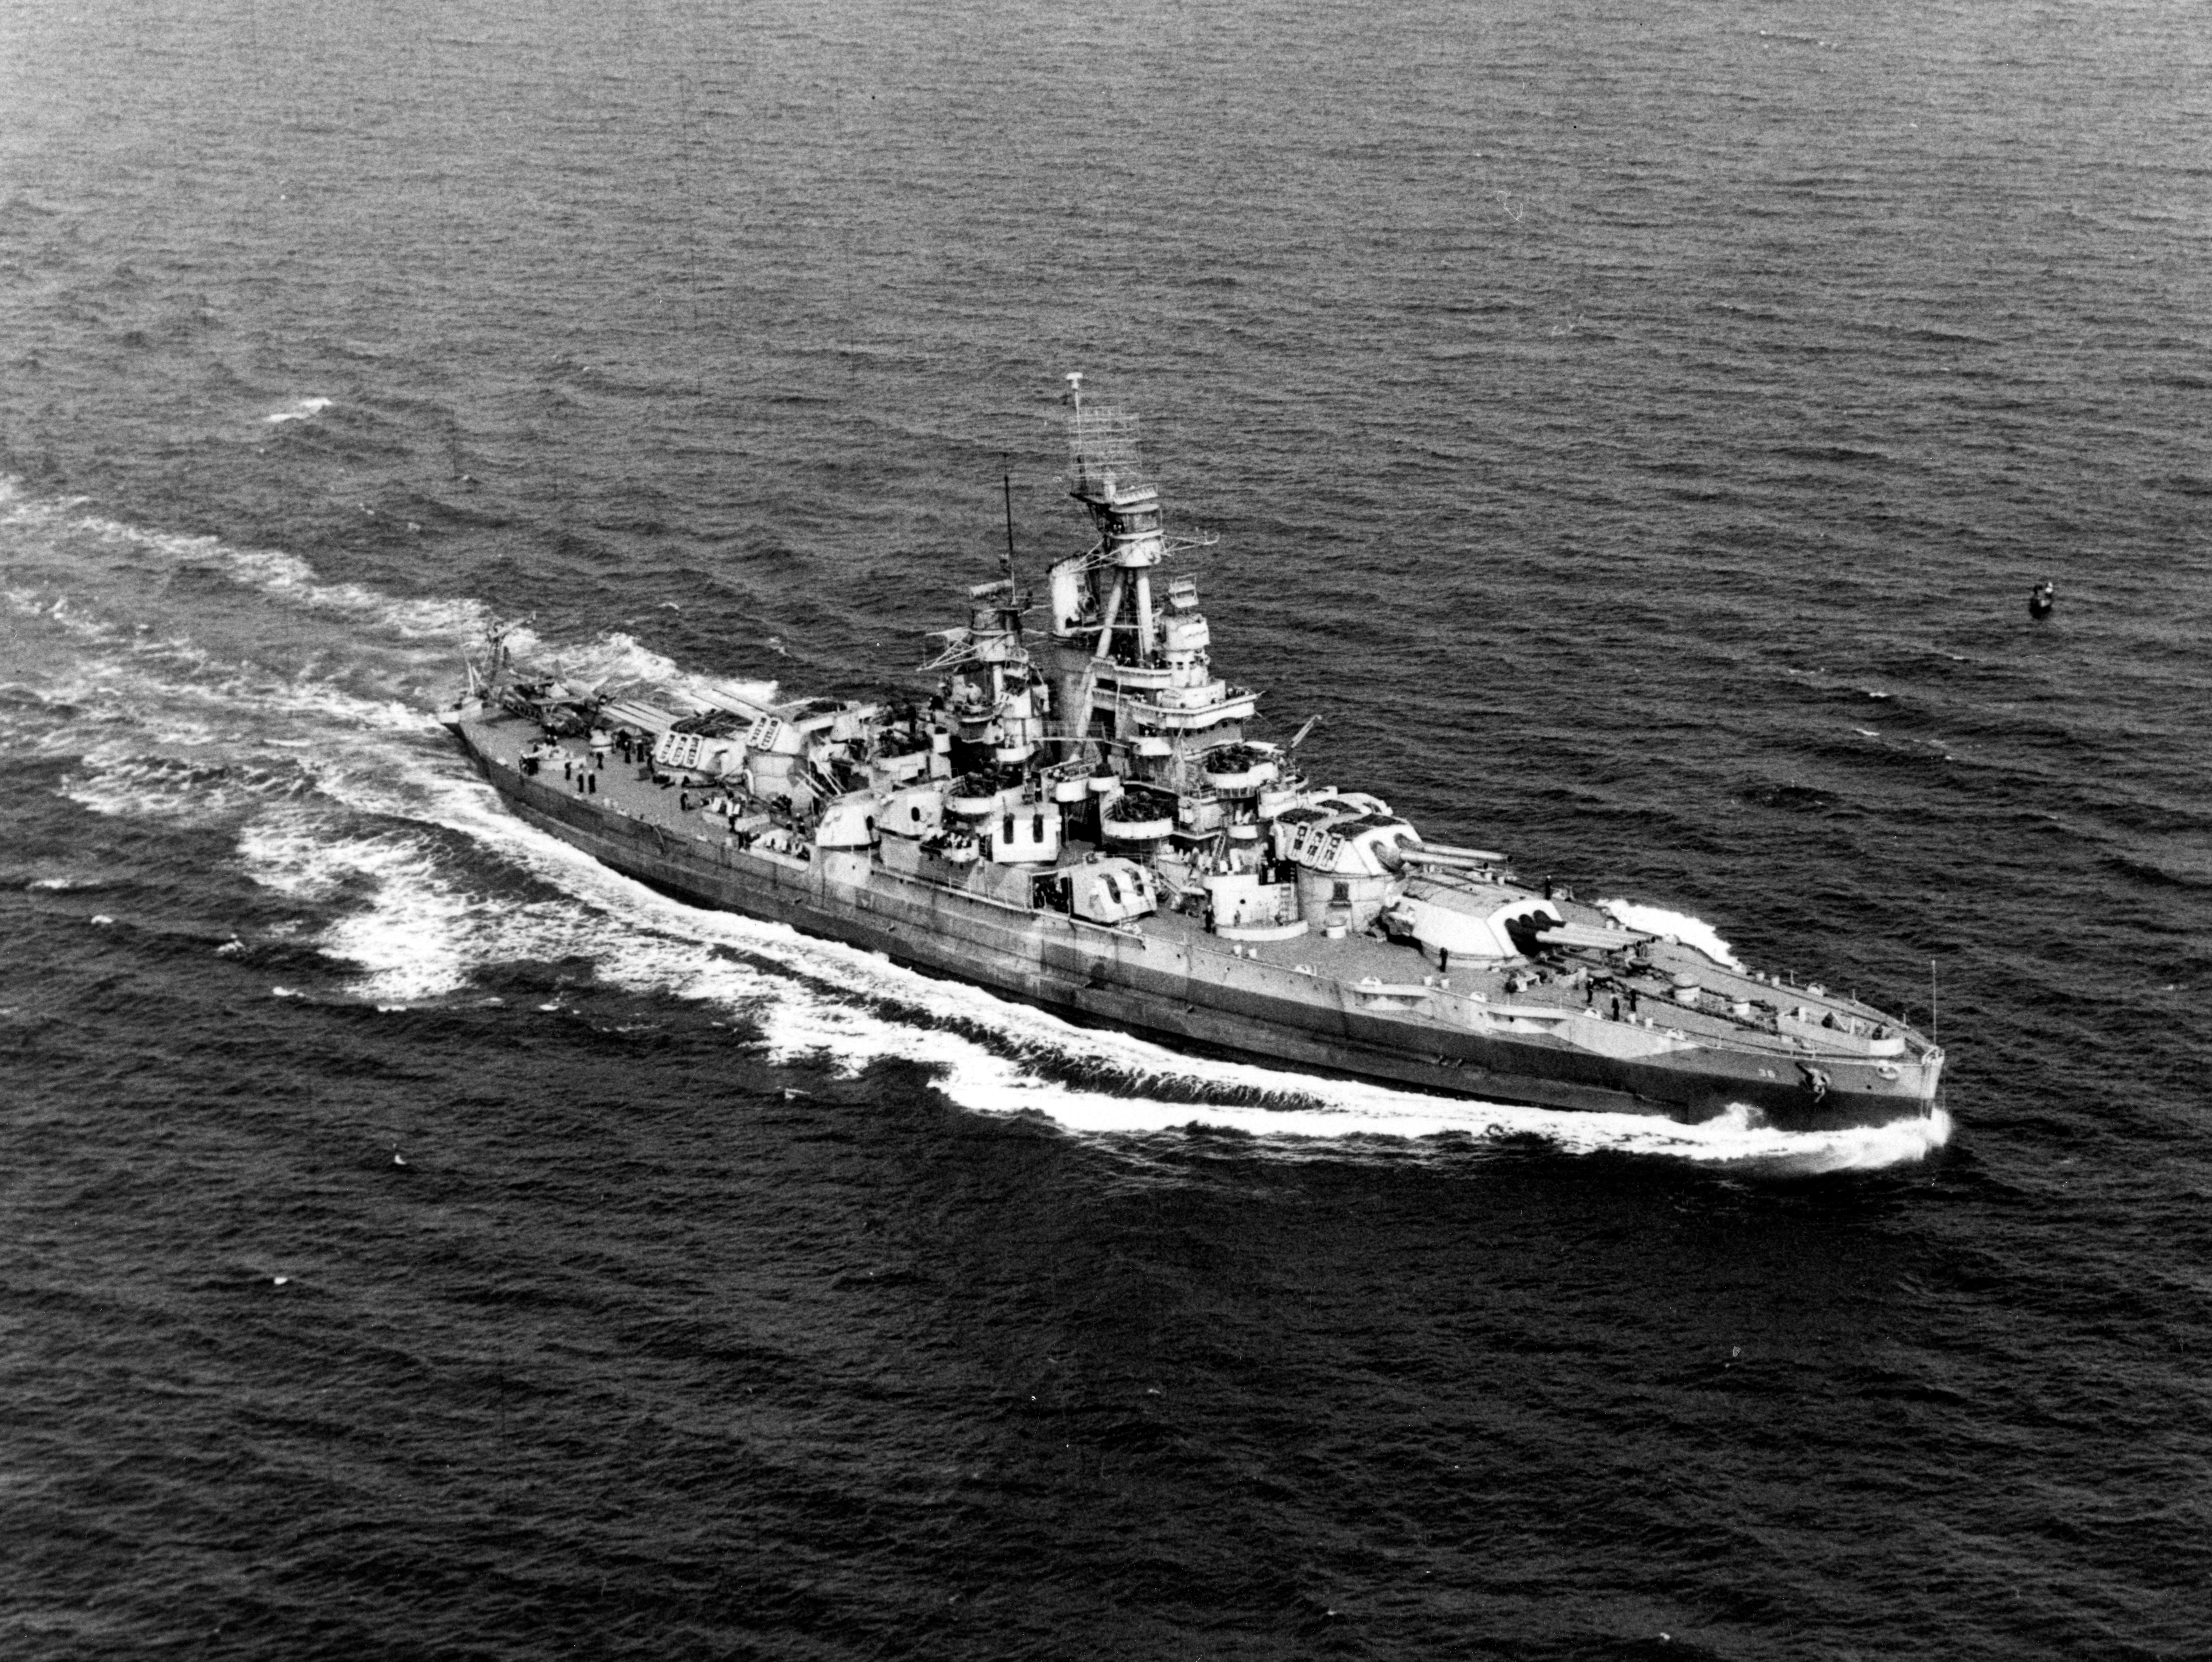 The USS Nevada